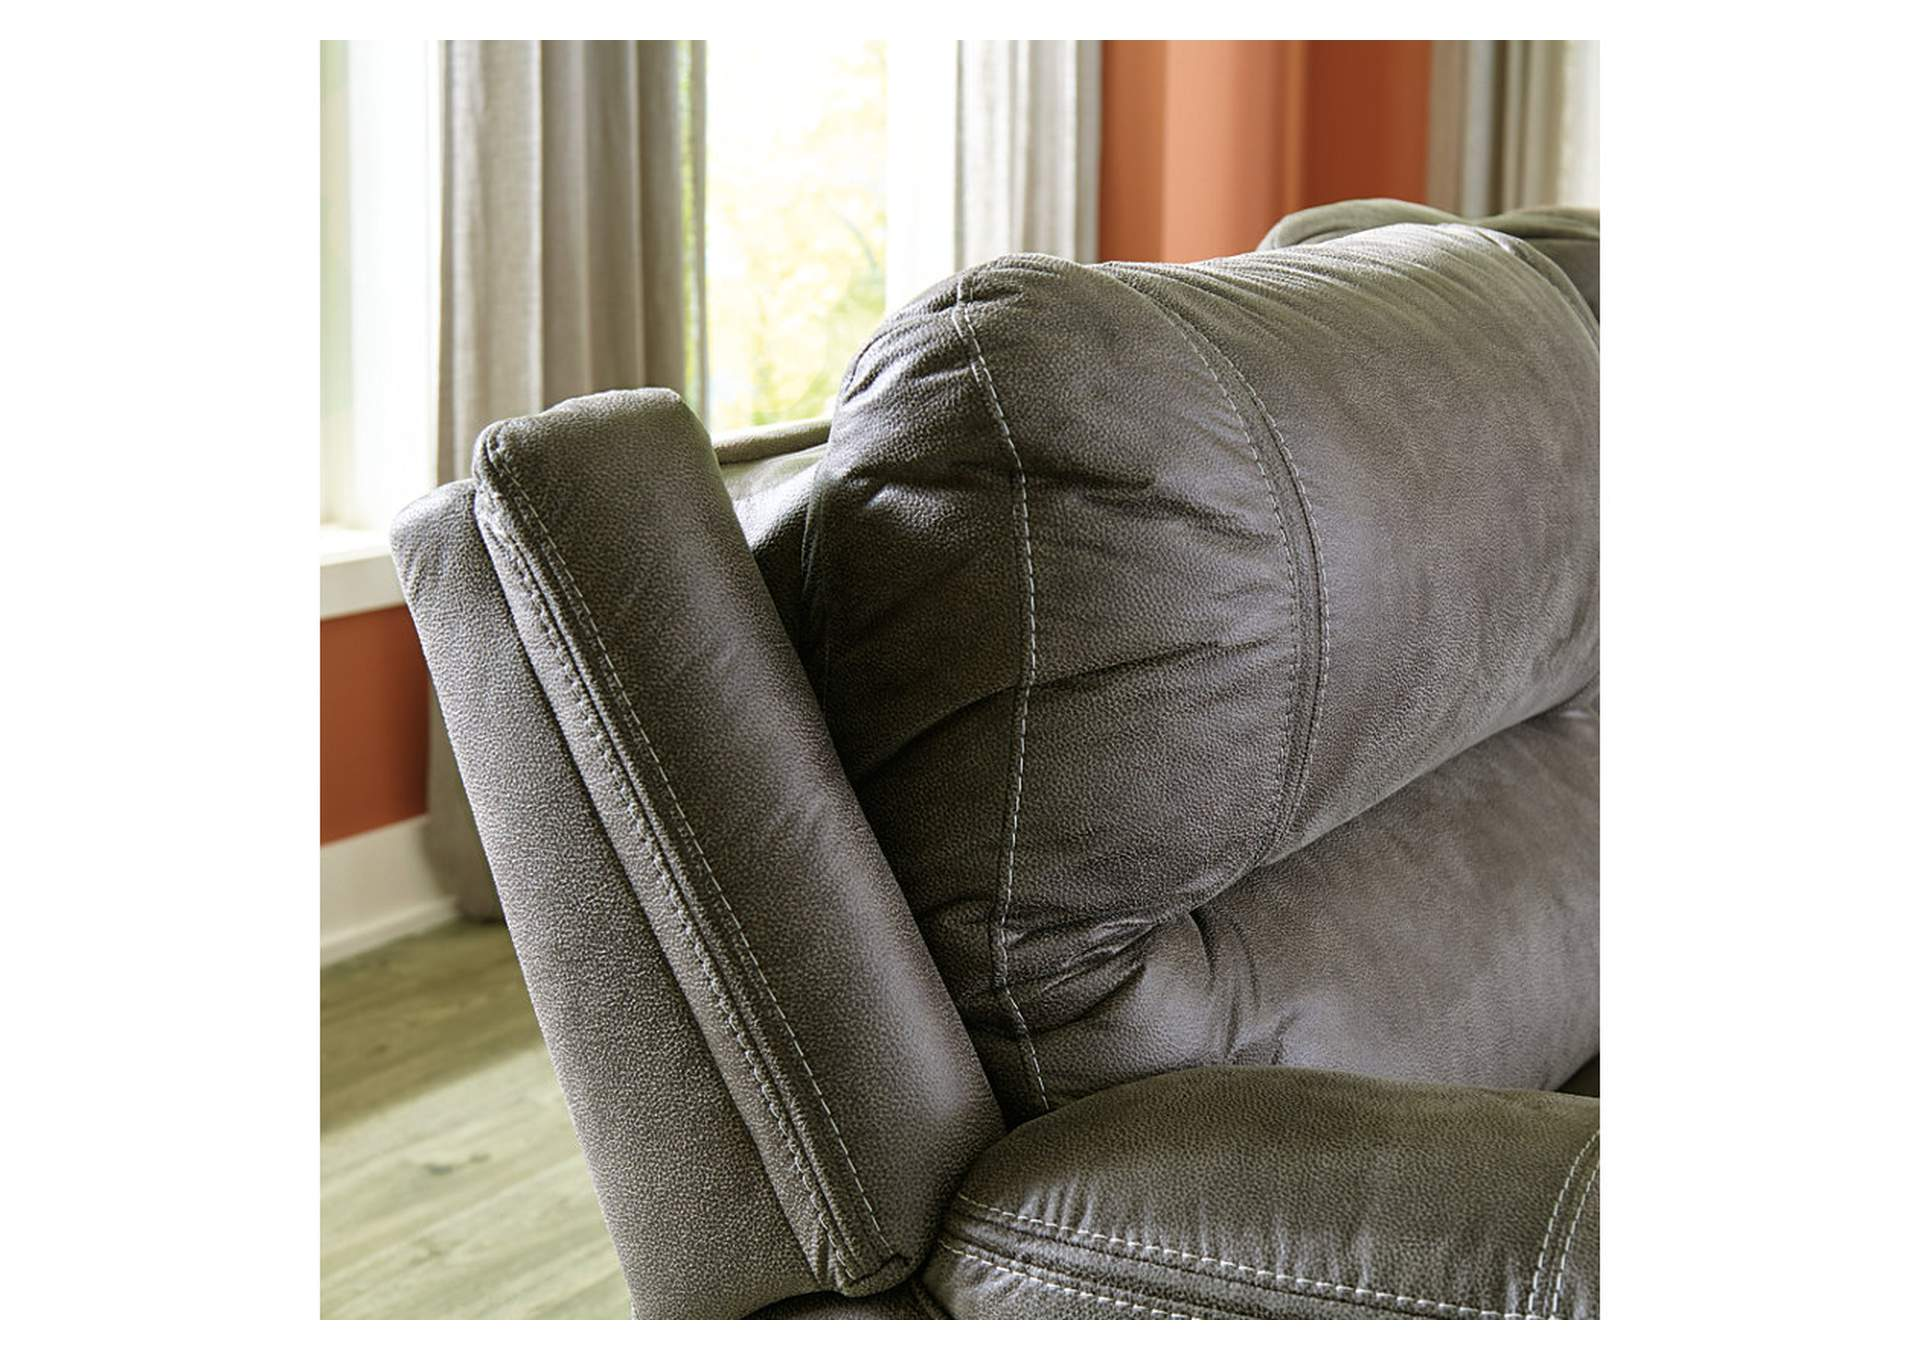 Cranedall Oversized Power Recliner,Signature Design By Ashley